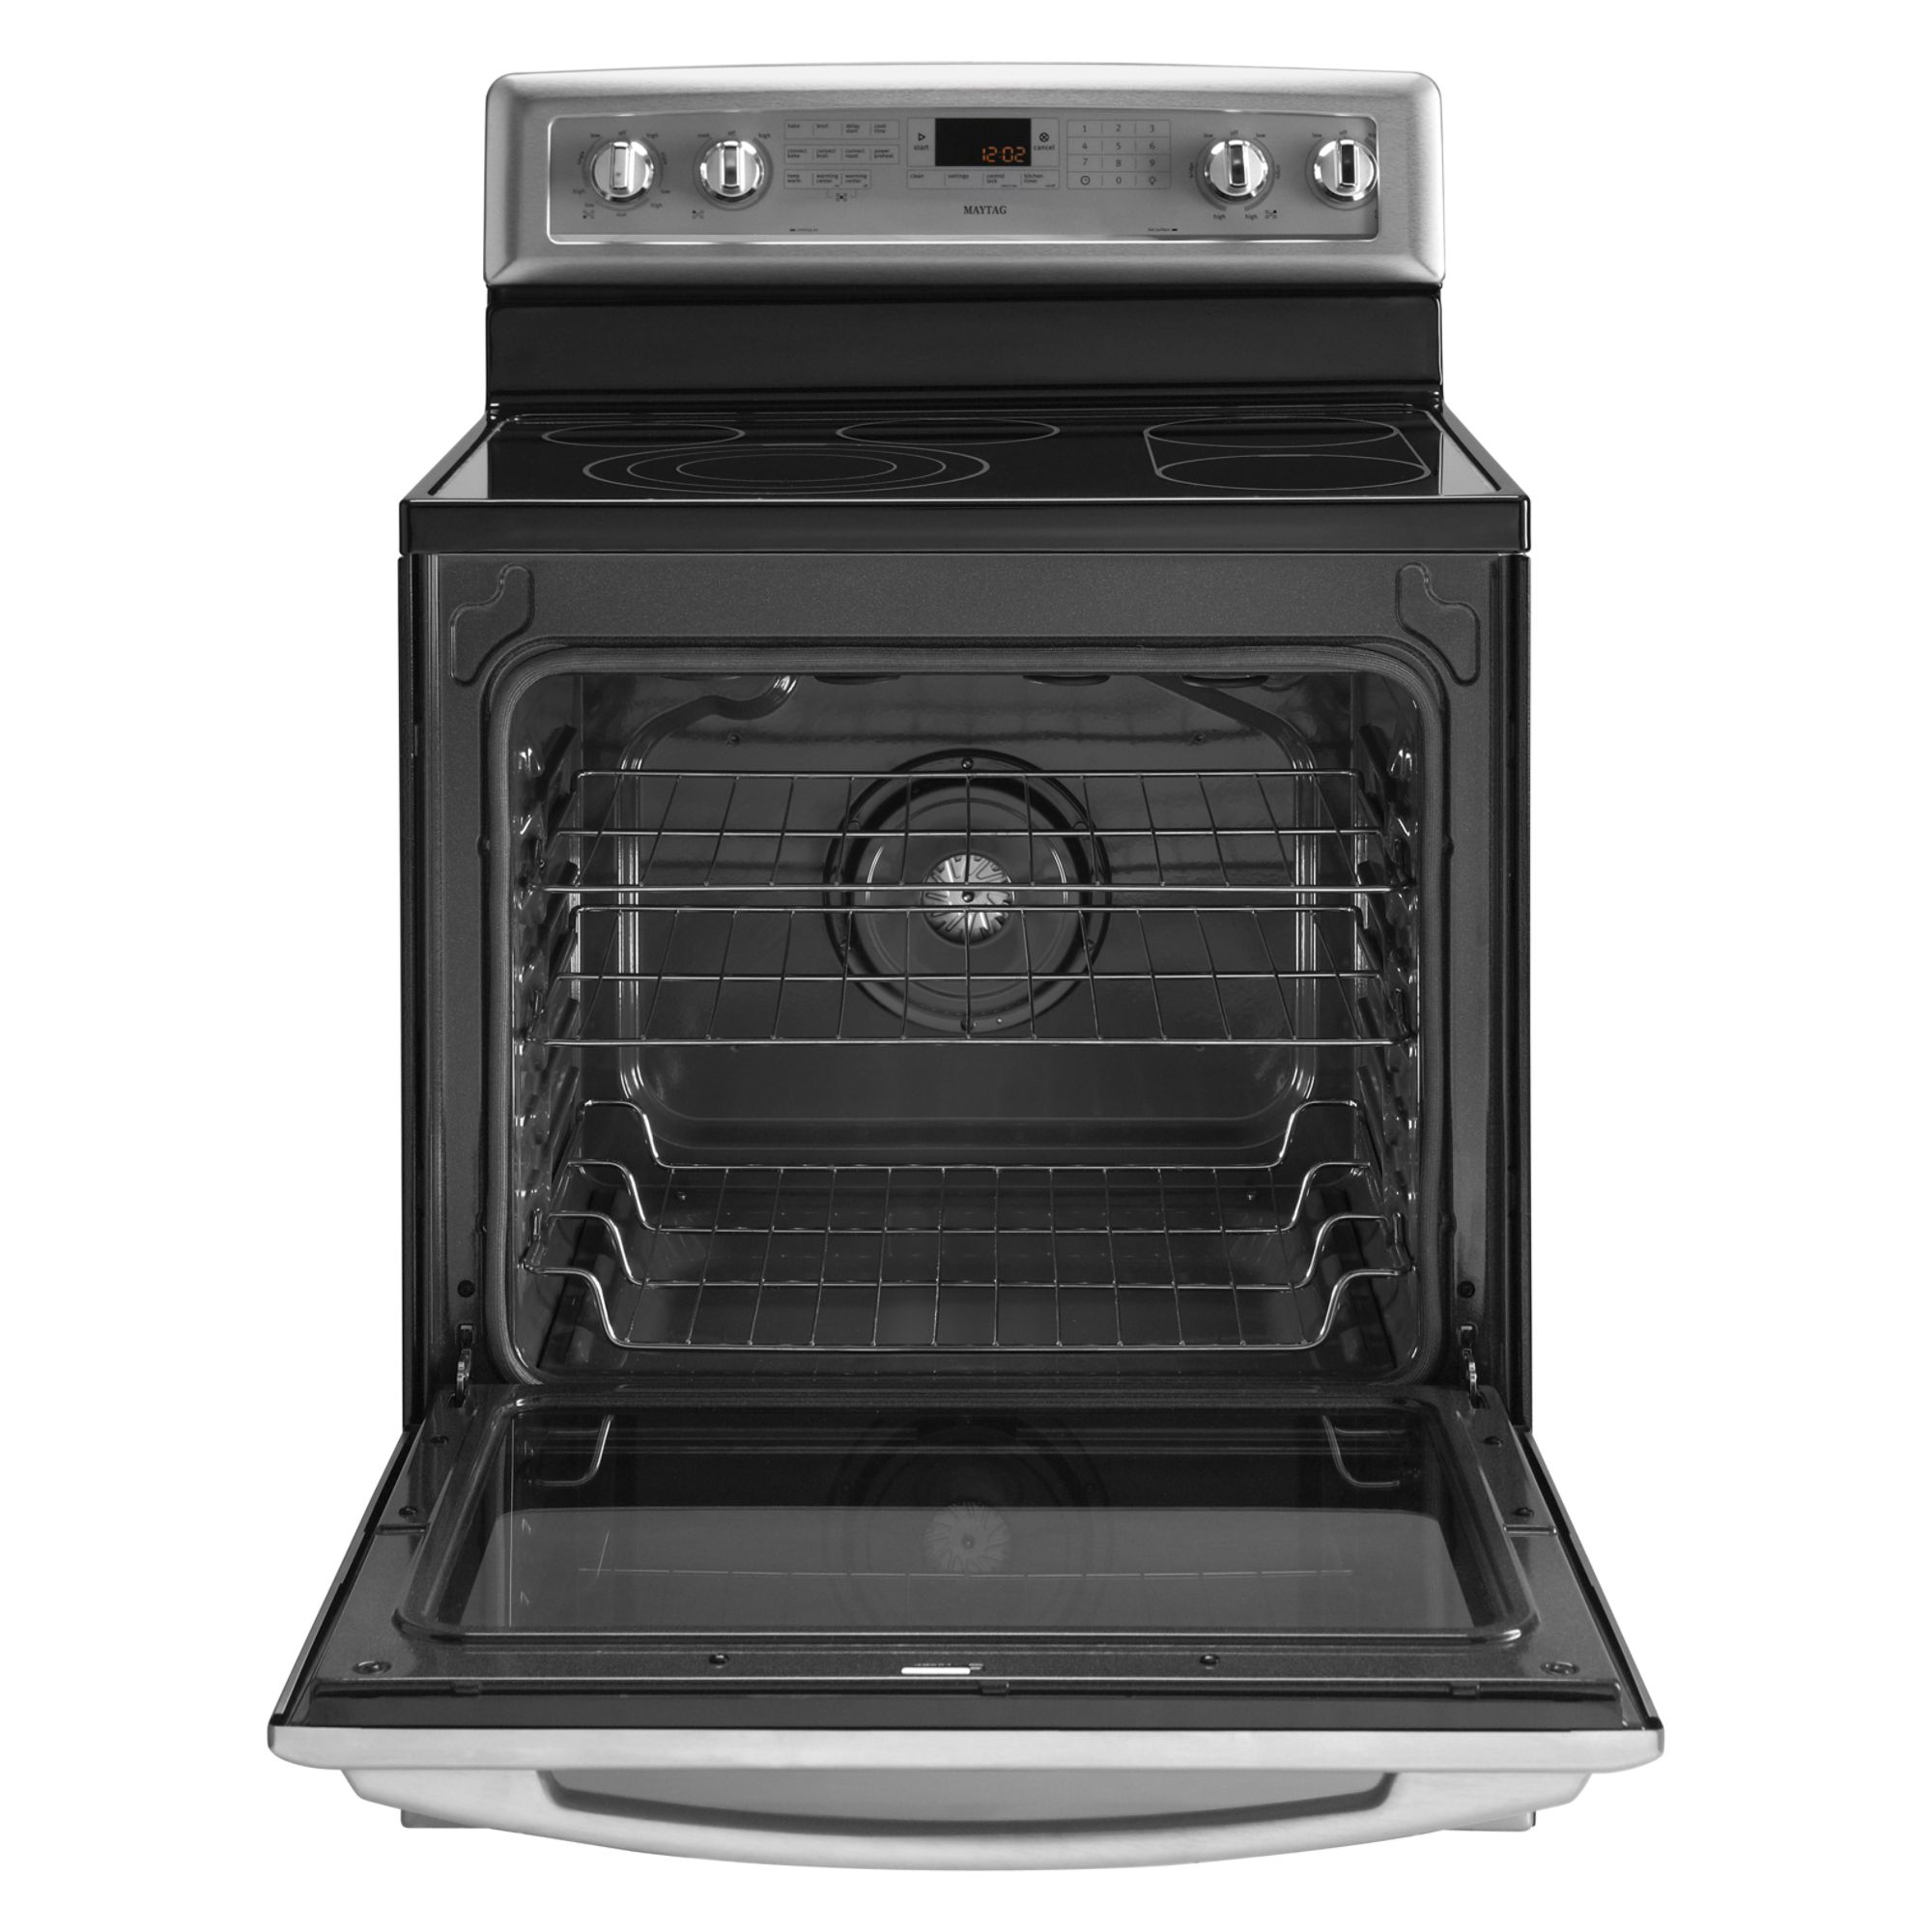 "Maytag 30"" Freestanding Electric Range w/ EvenAir™ True Convection - Stainless Steel"